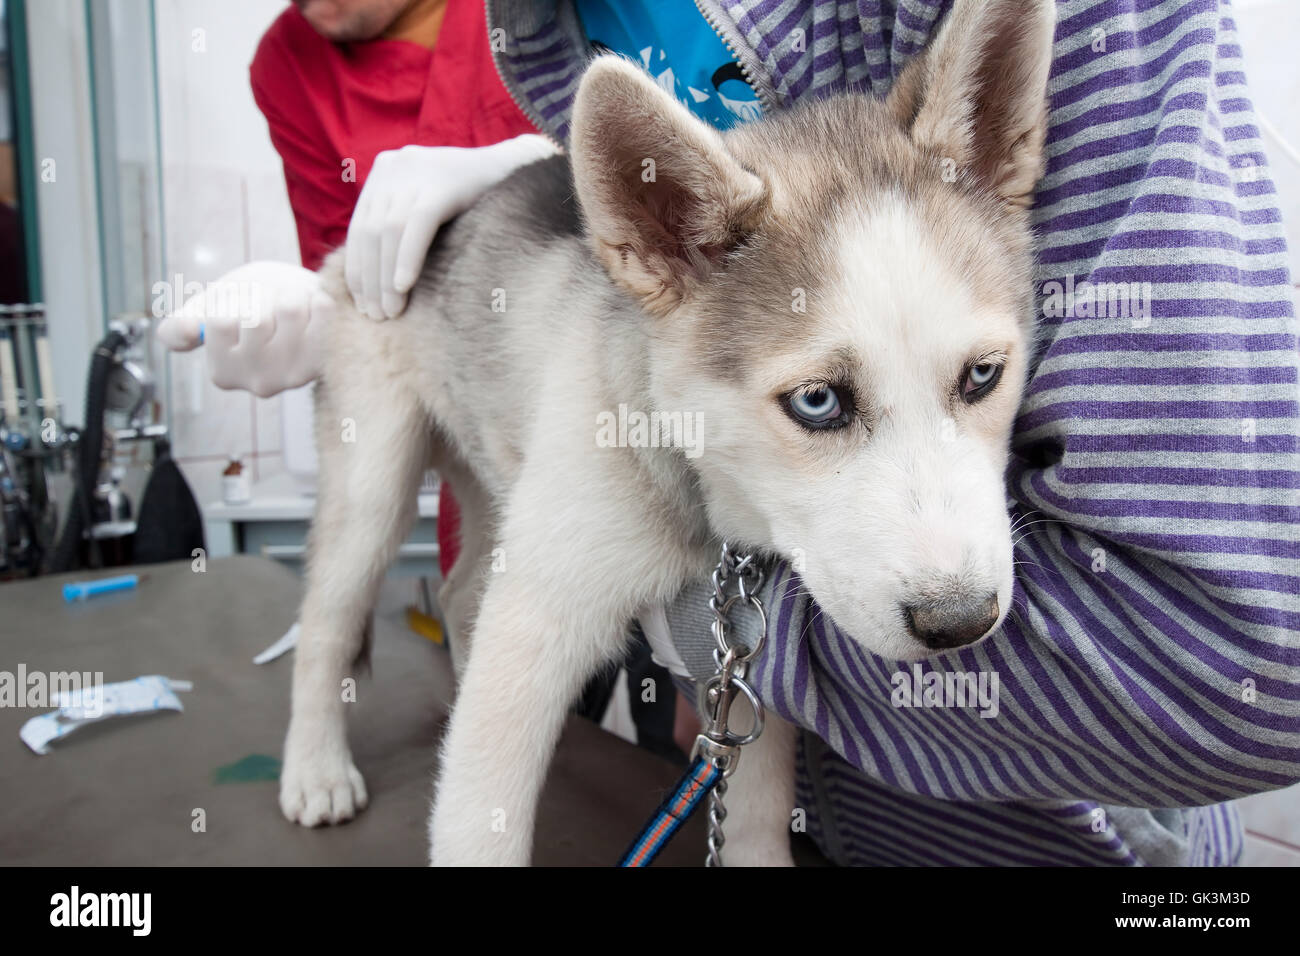 health pet dog - Stock Image